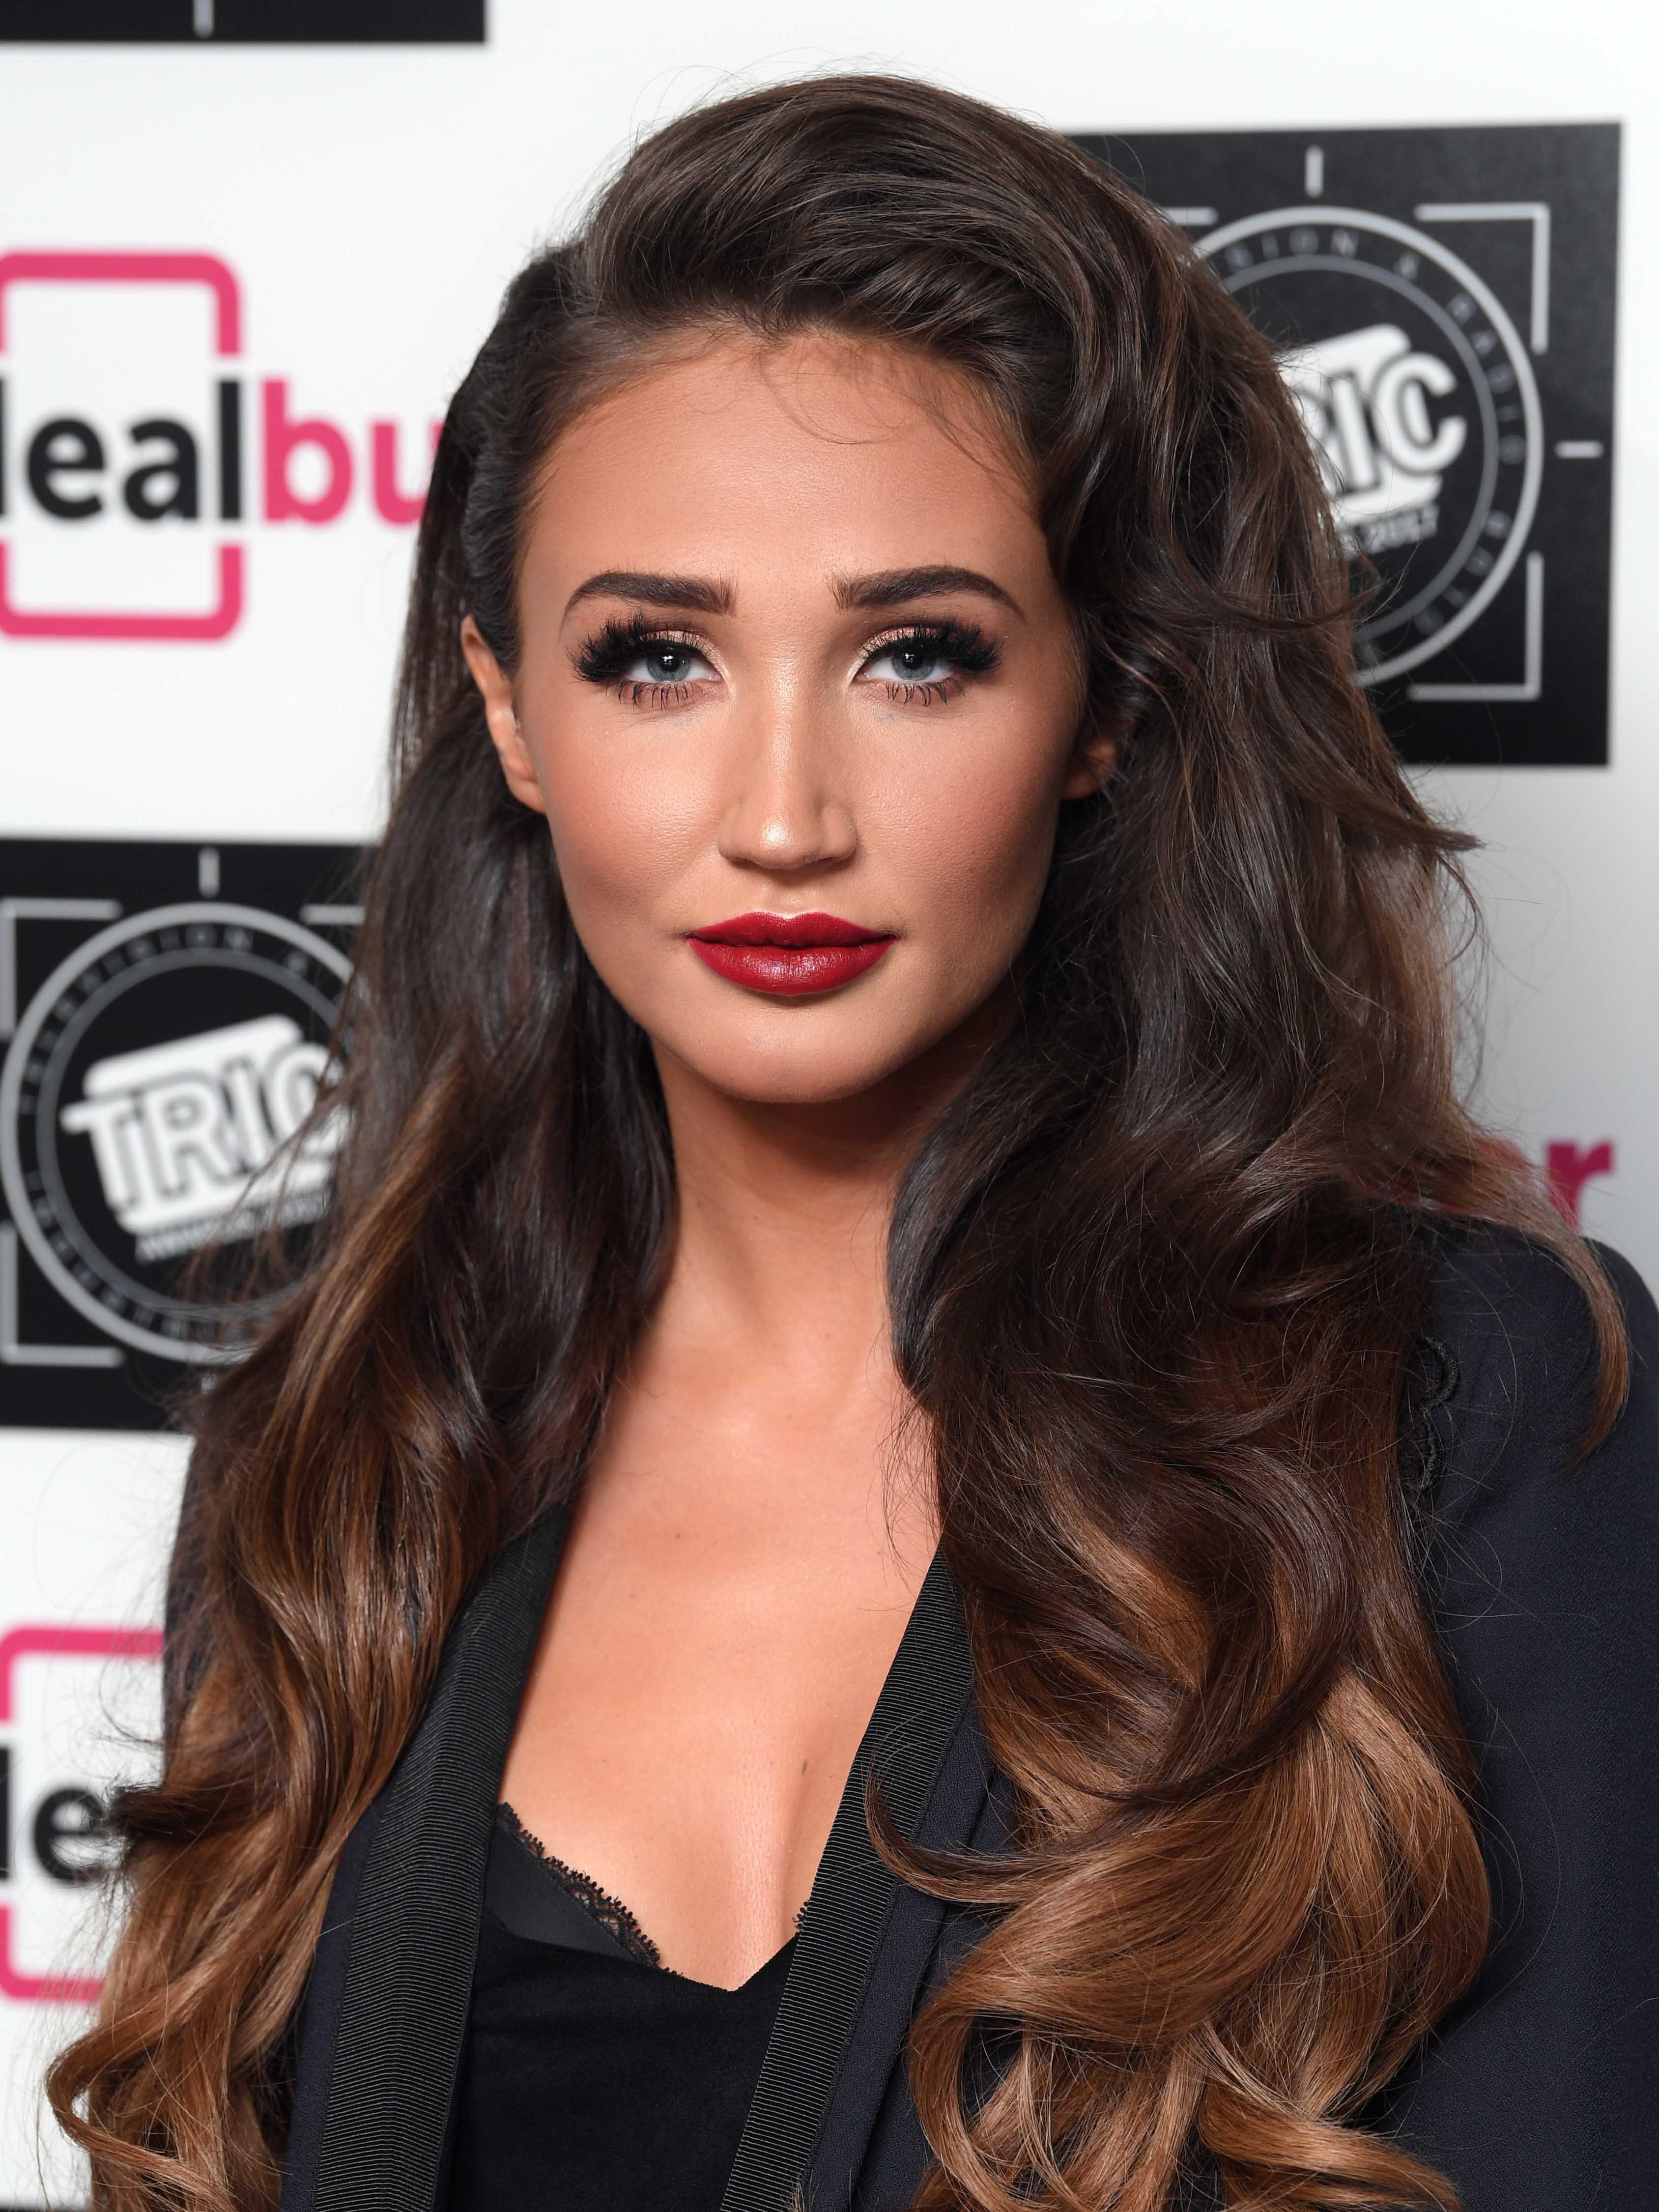 Images Megan McKenna naked (81 pics), Topless